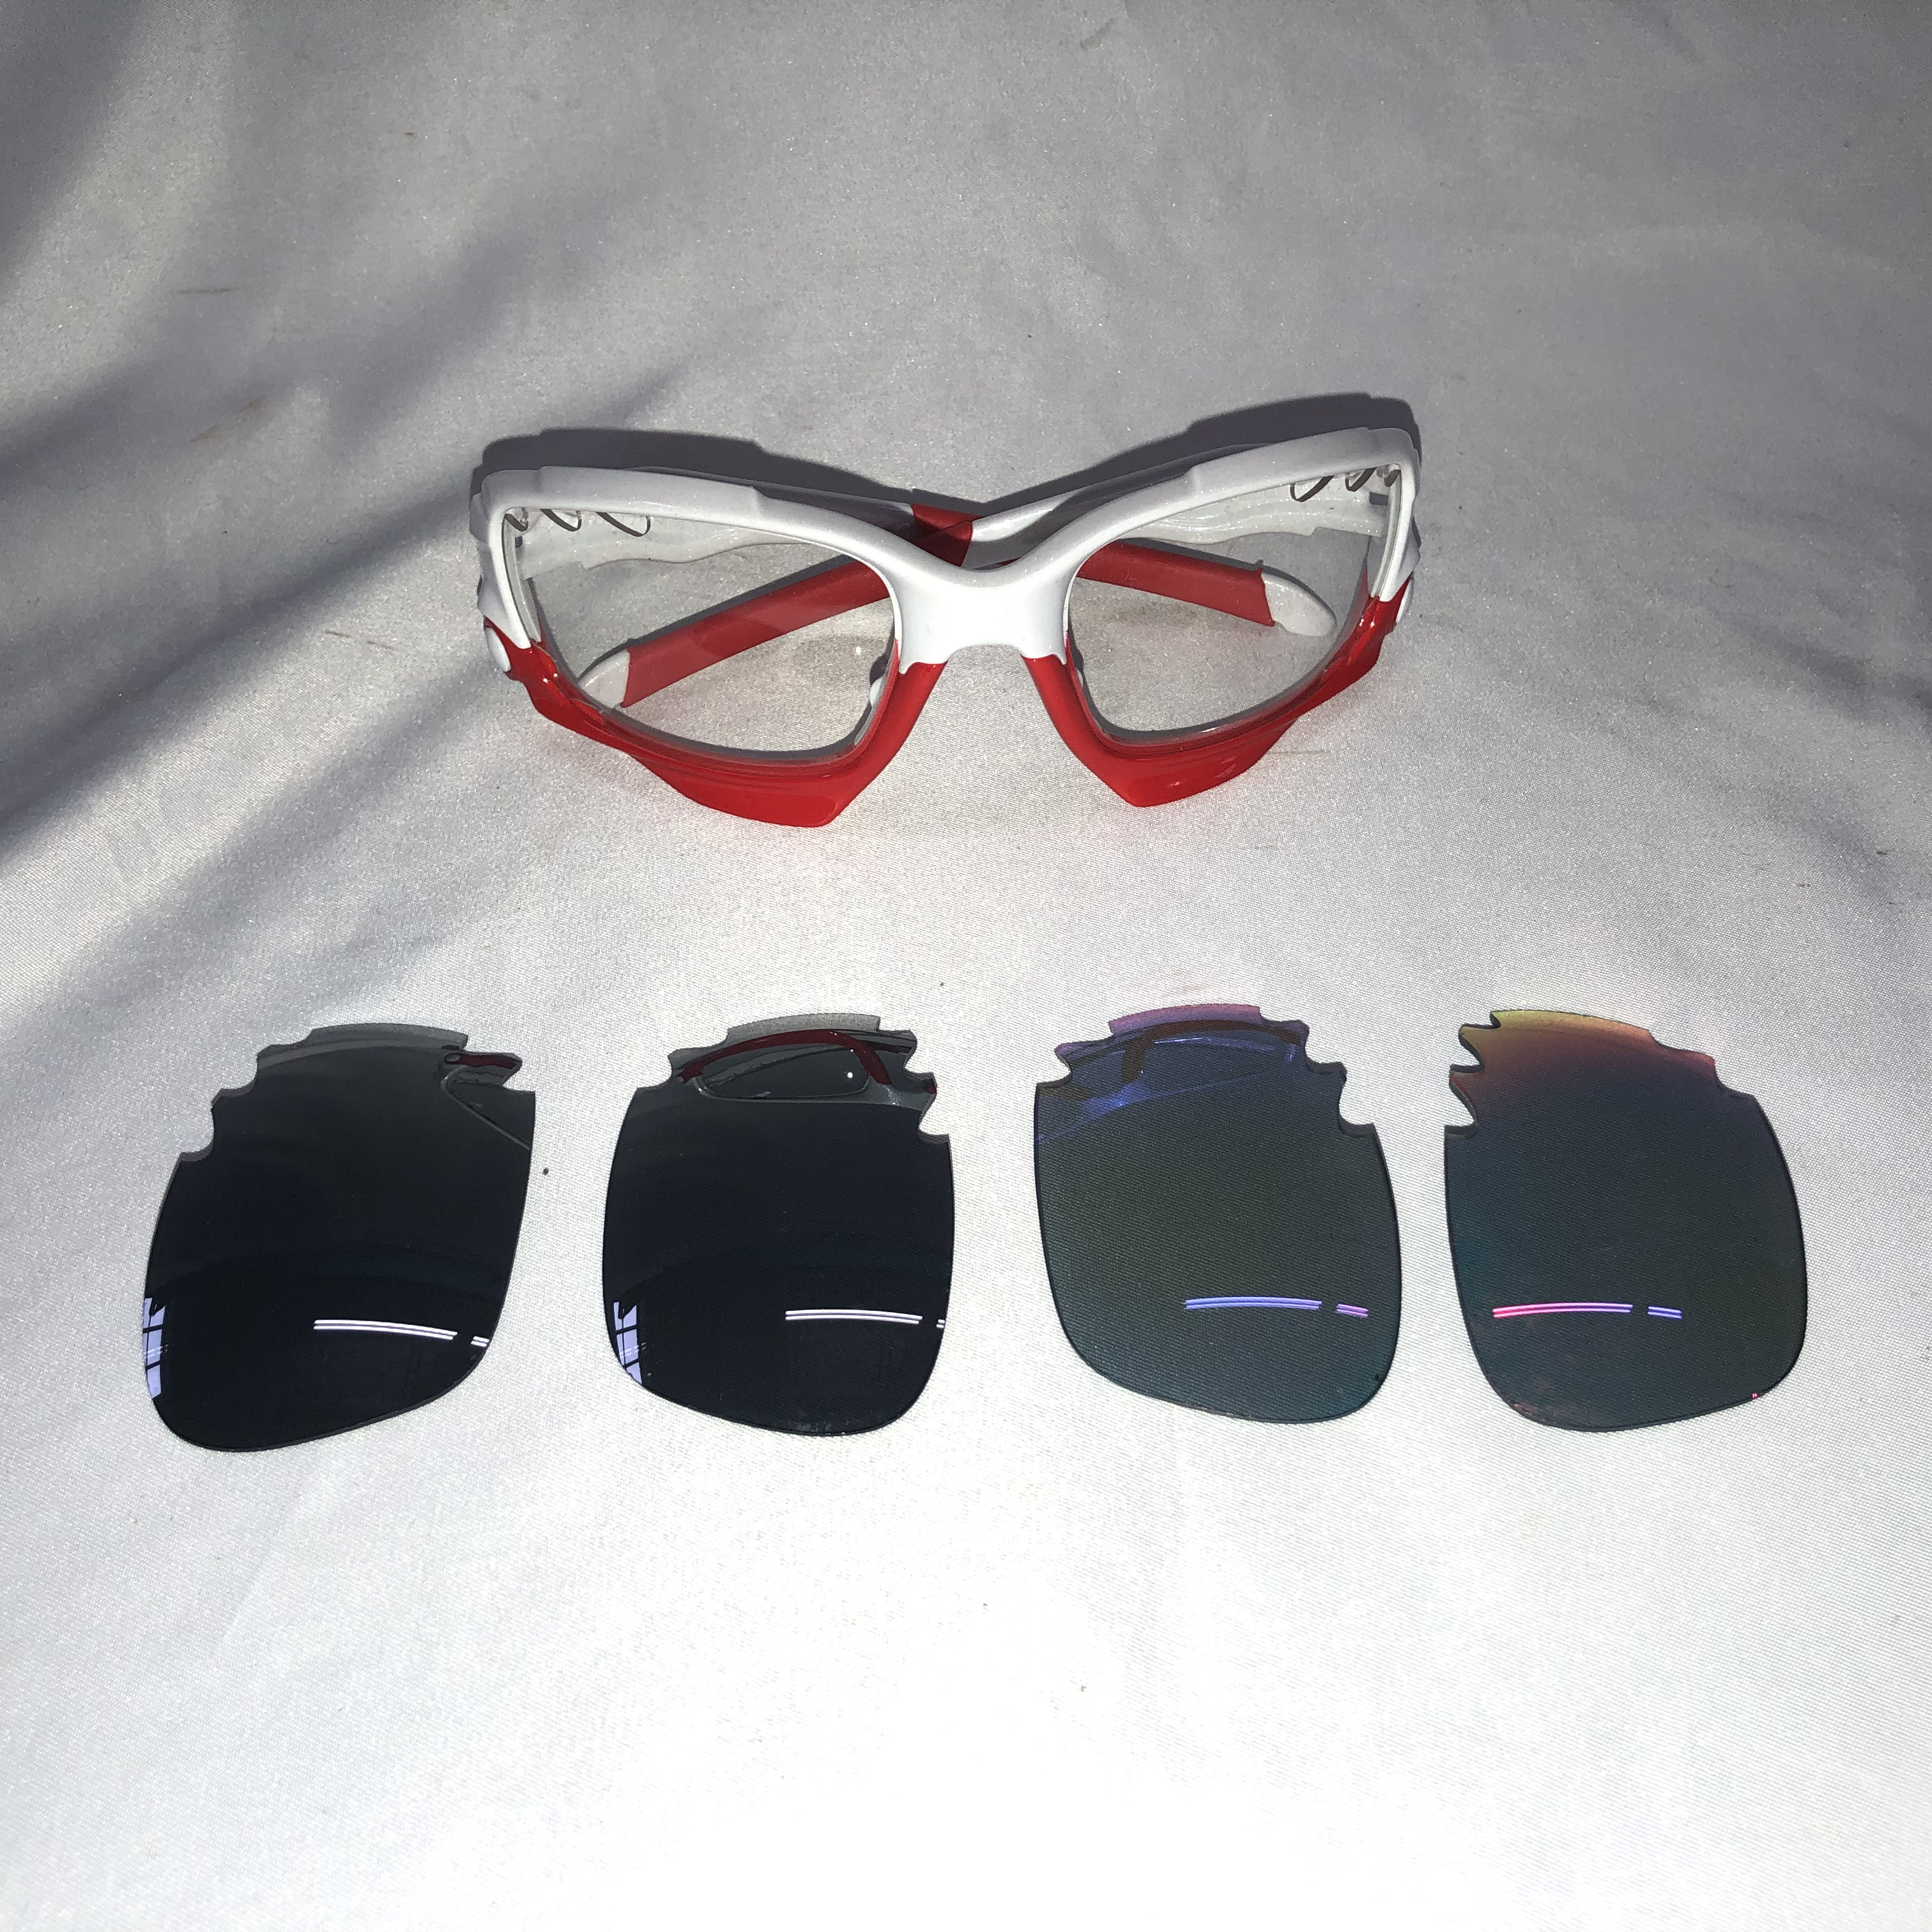 a0117d63d511e Details about Oakley Jawbone Sunglasses Red White w  Extra Lenses